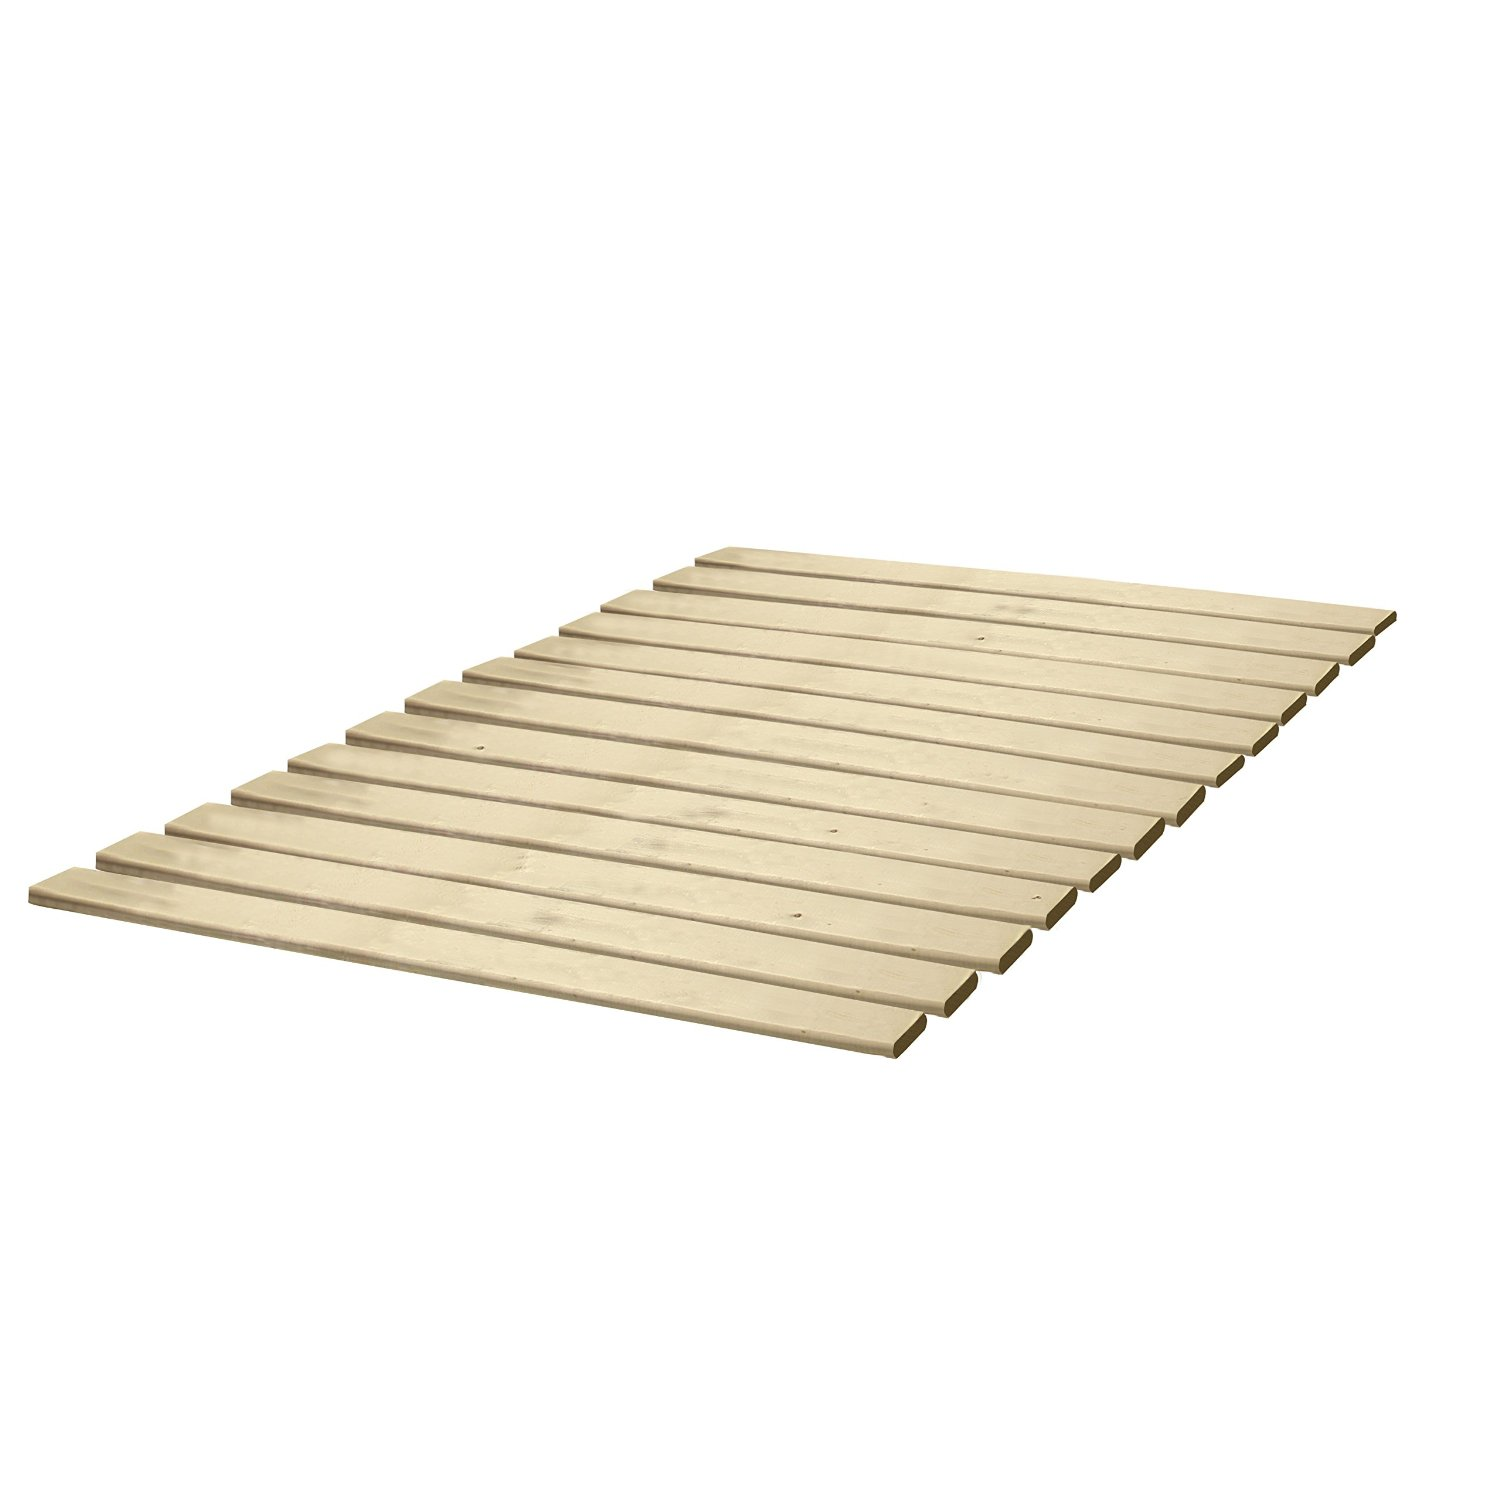 Classic Brands Wooden Bed Slats/Bunkie Board Solid Wood, Full Size